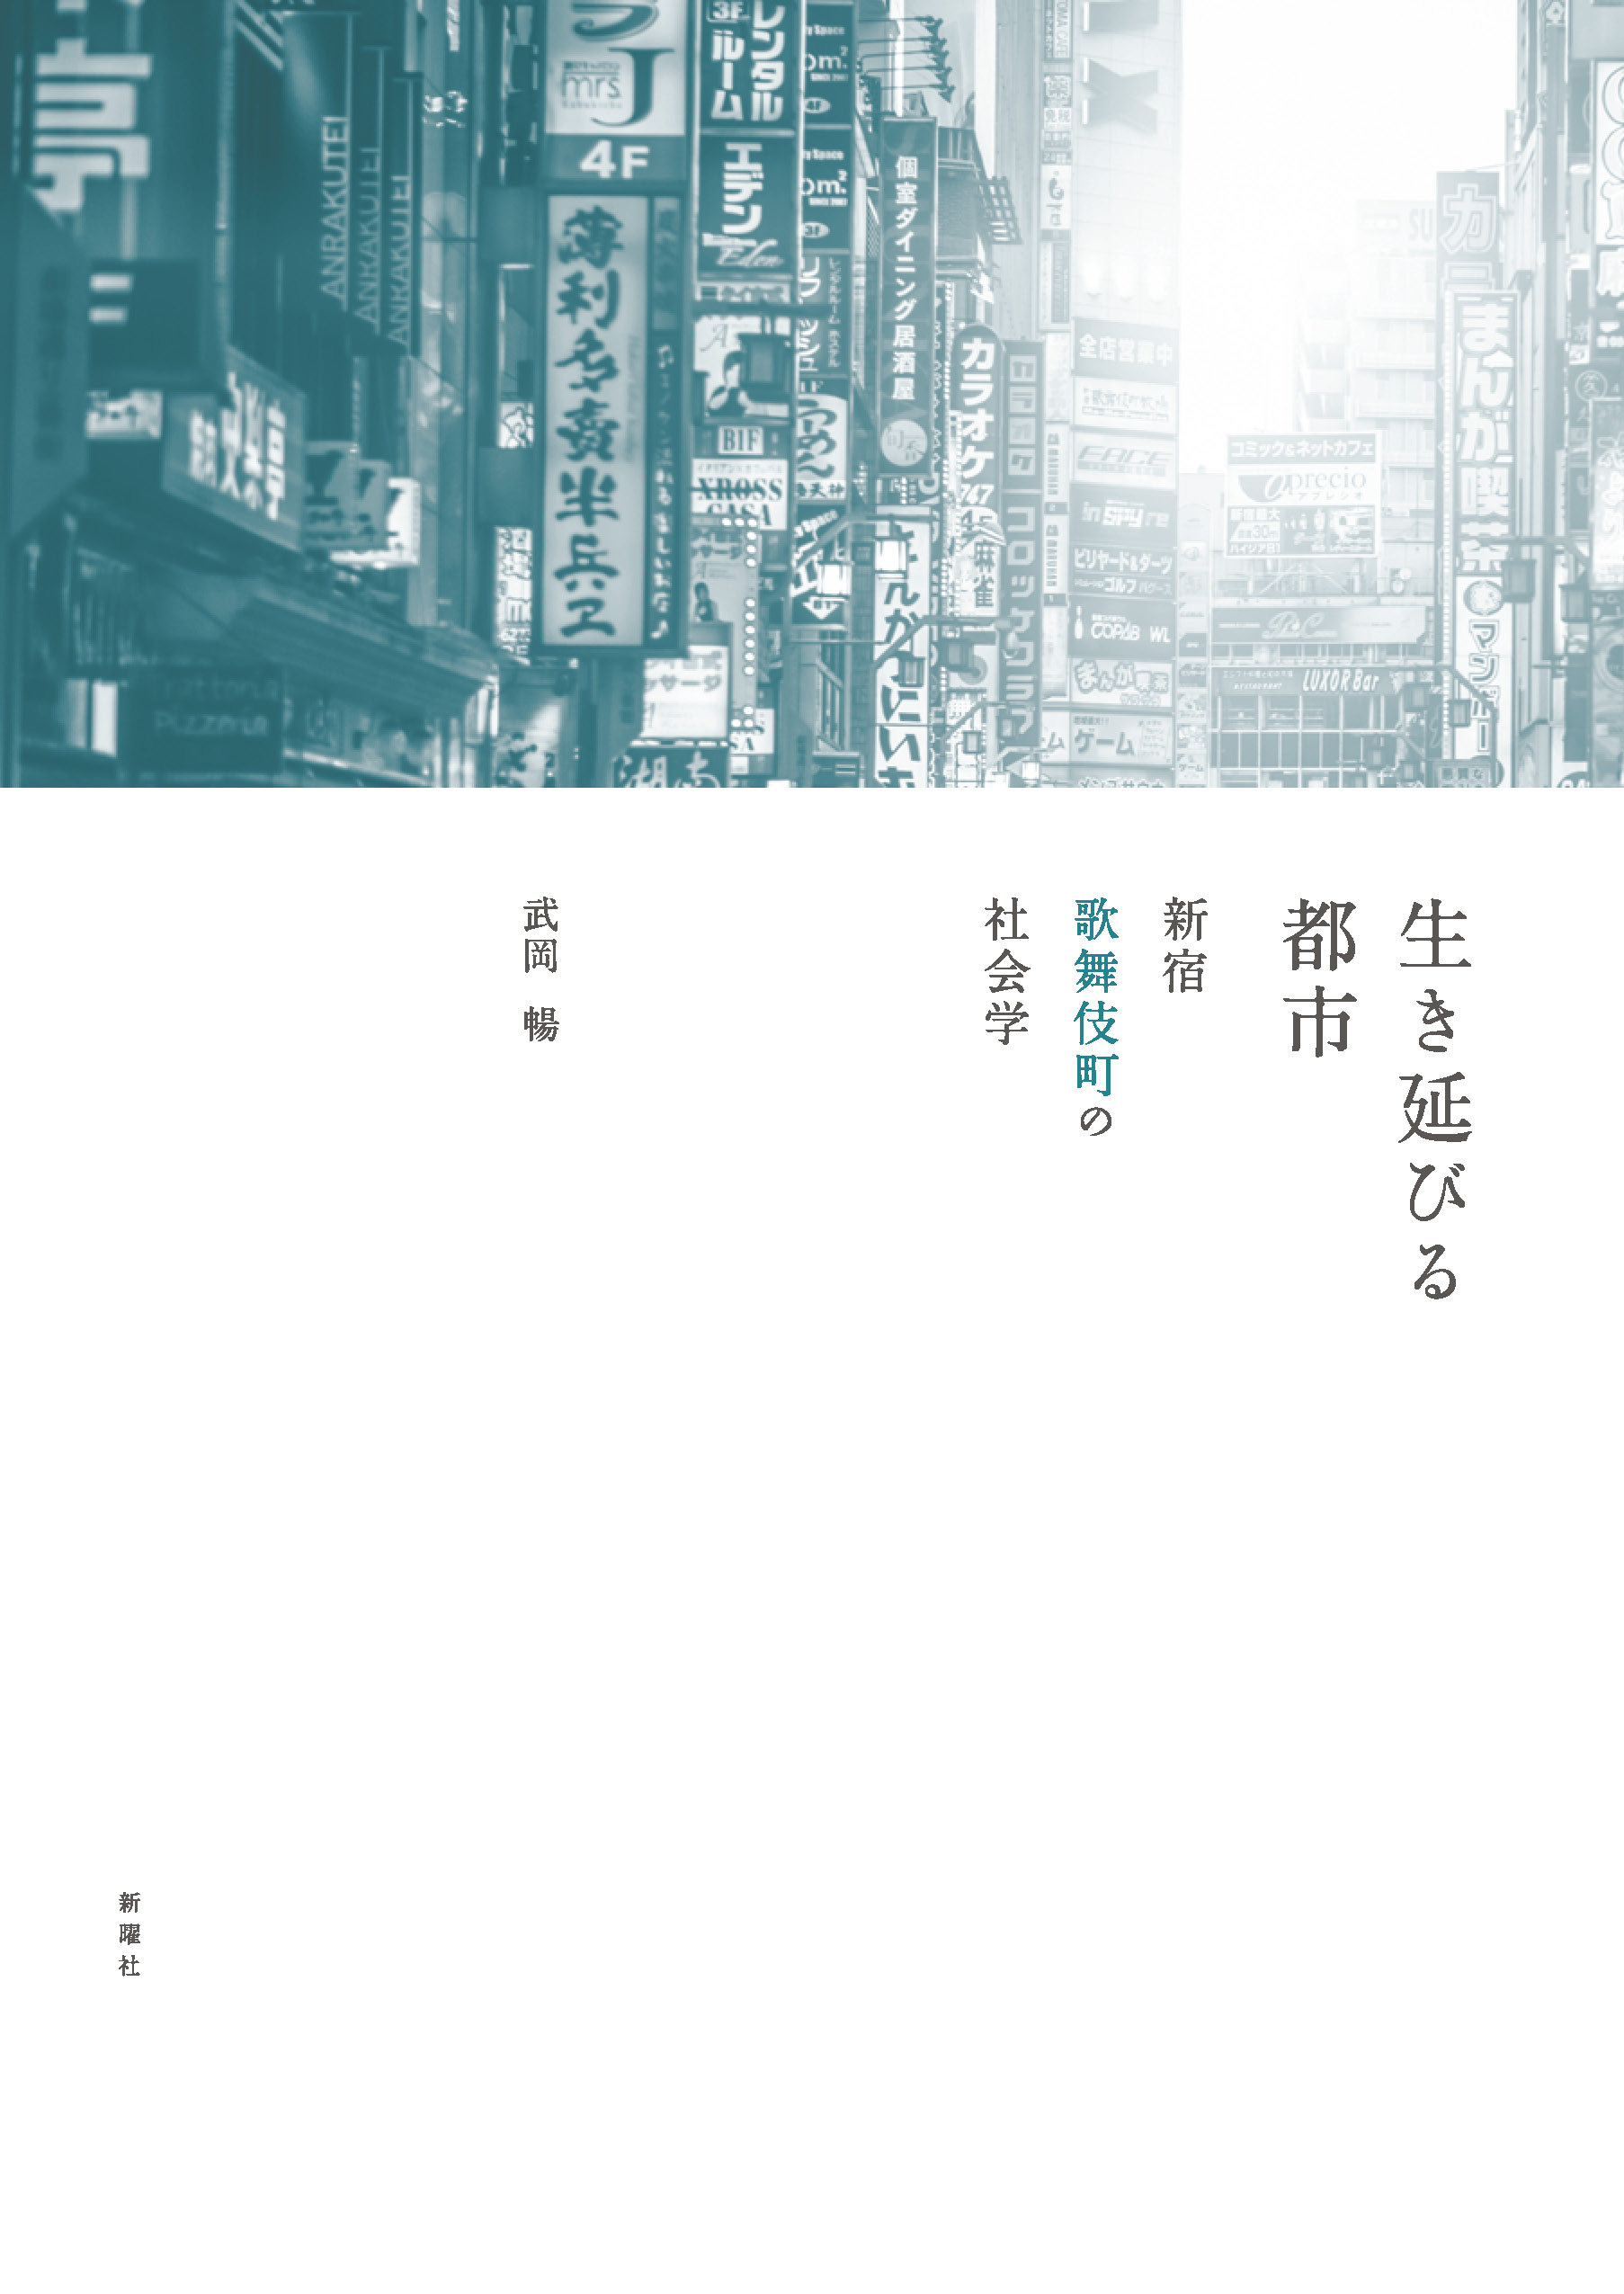 greenish b+w picture of Shinjuku on a cover